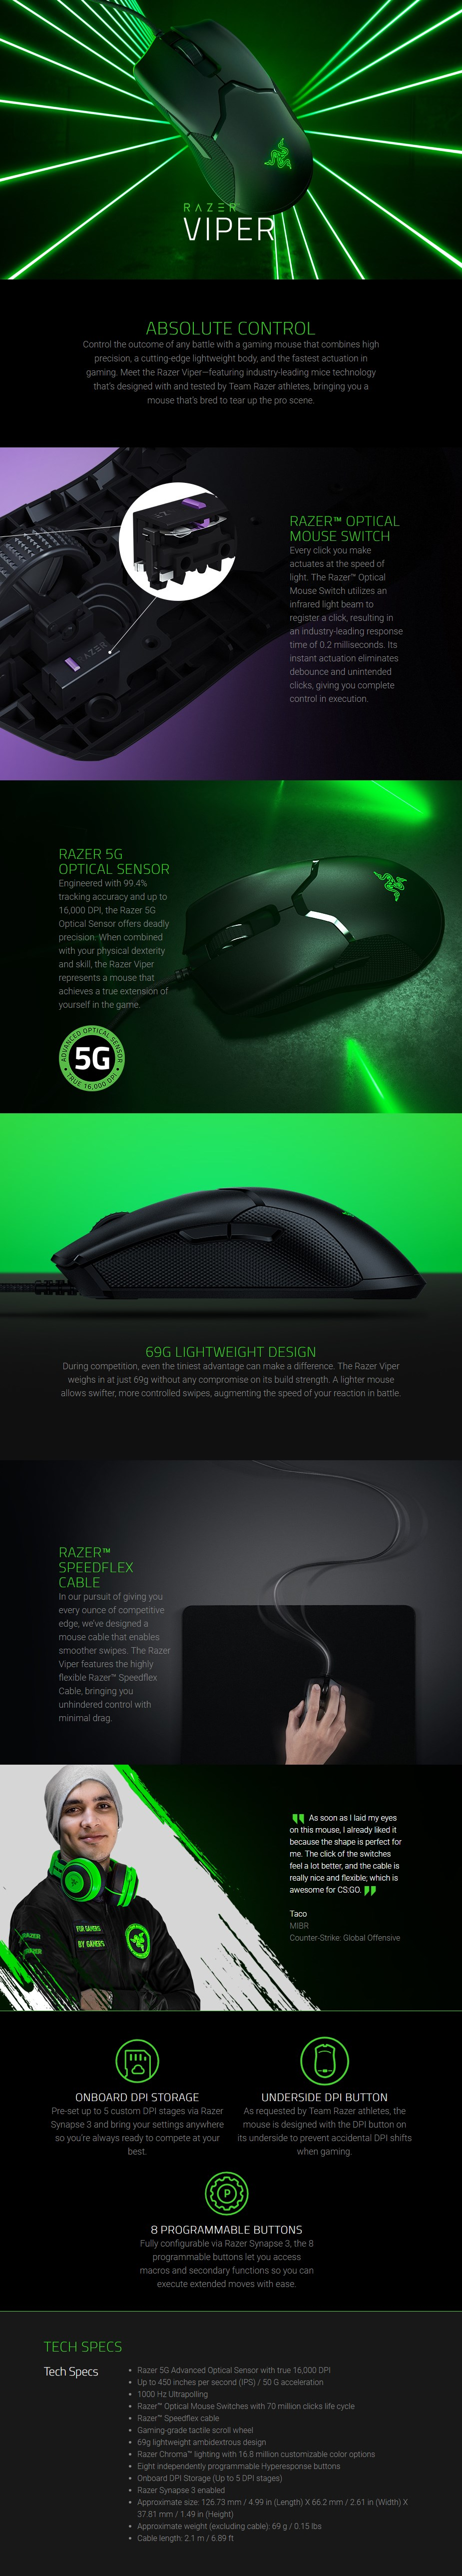 Razer Viper Optical Gaming Mouse - Overview 1